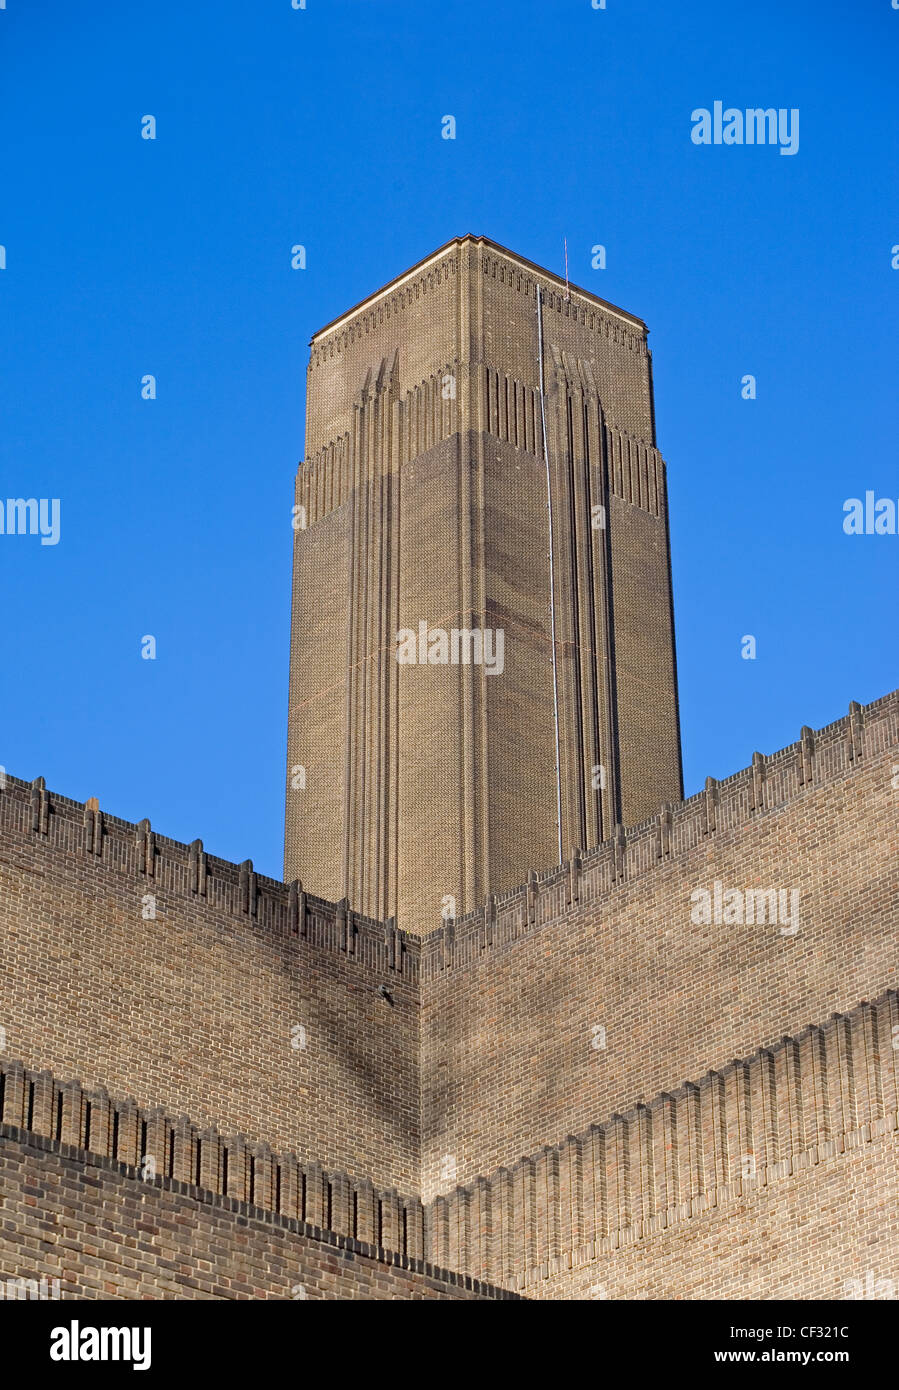 The chimney of the former Bankside power station now home to the Tate Modern that houses international modern and - Stock Image